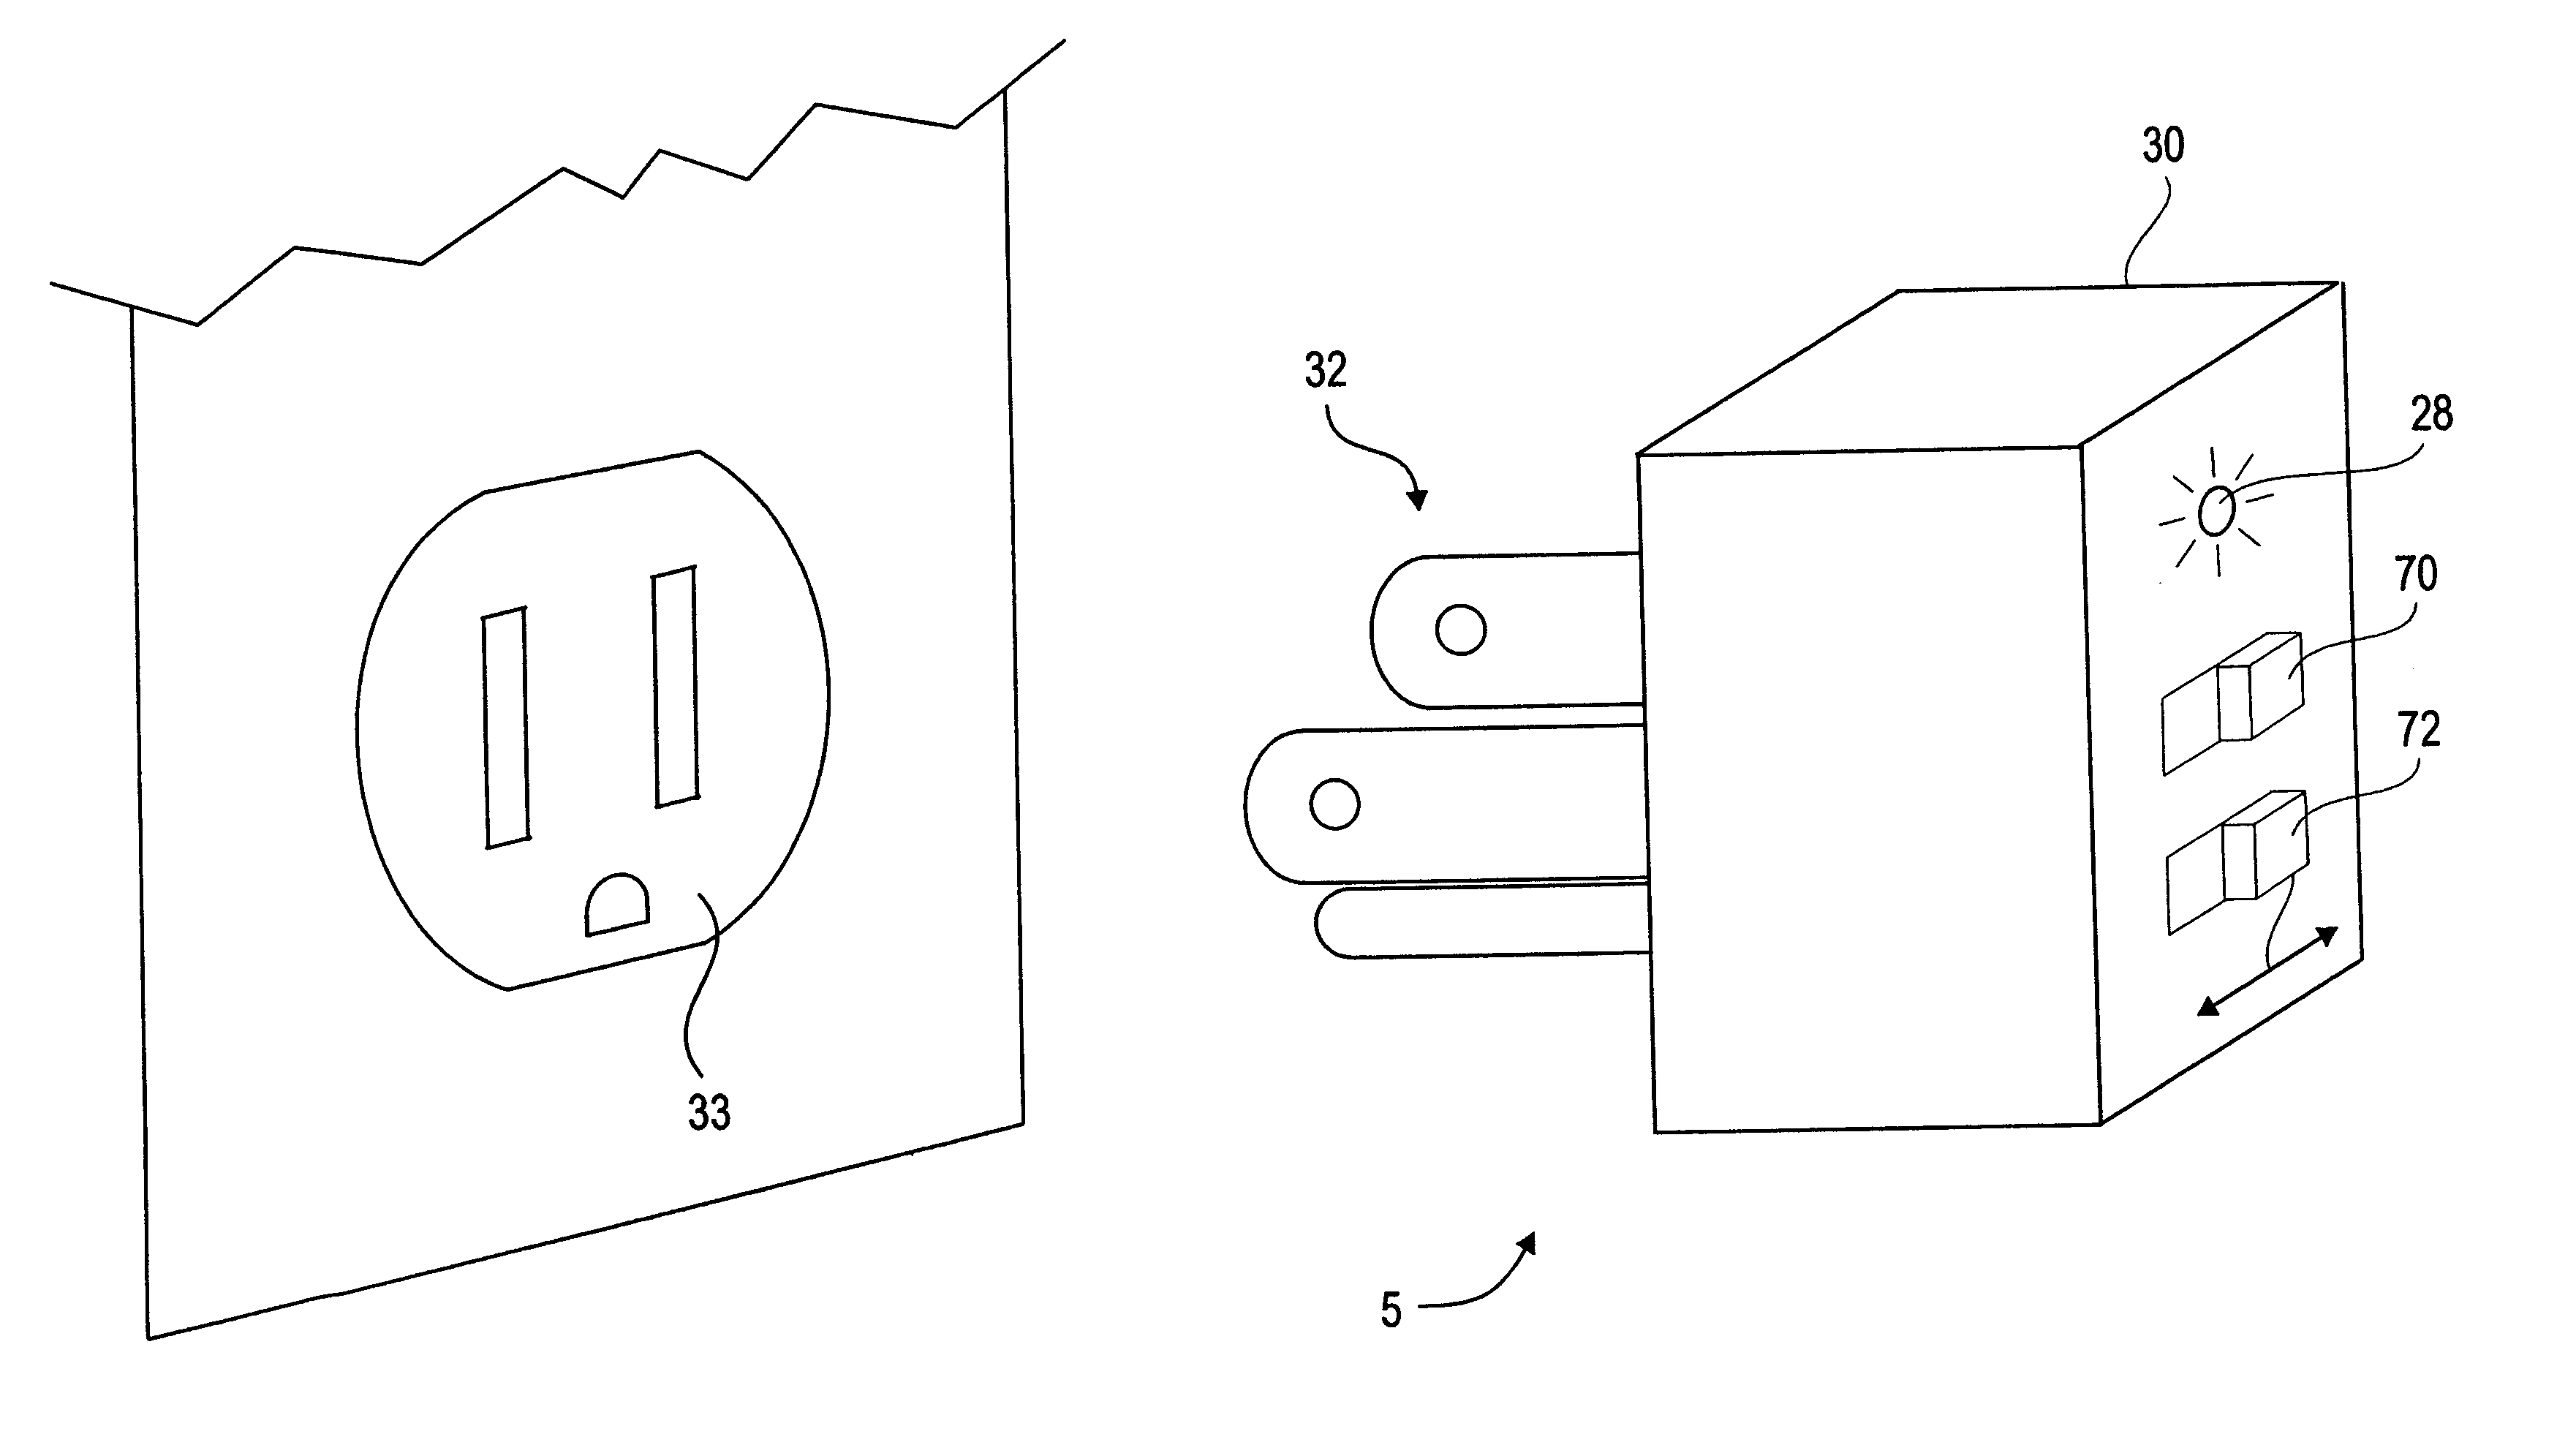 patent us6218844 - method and apparatus for testing an arcing fault circuit interrupter